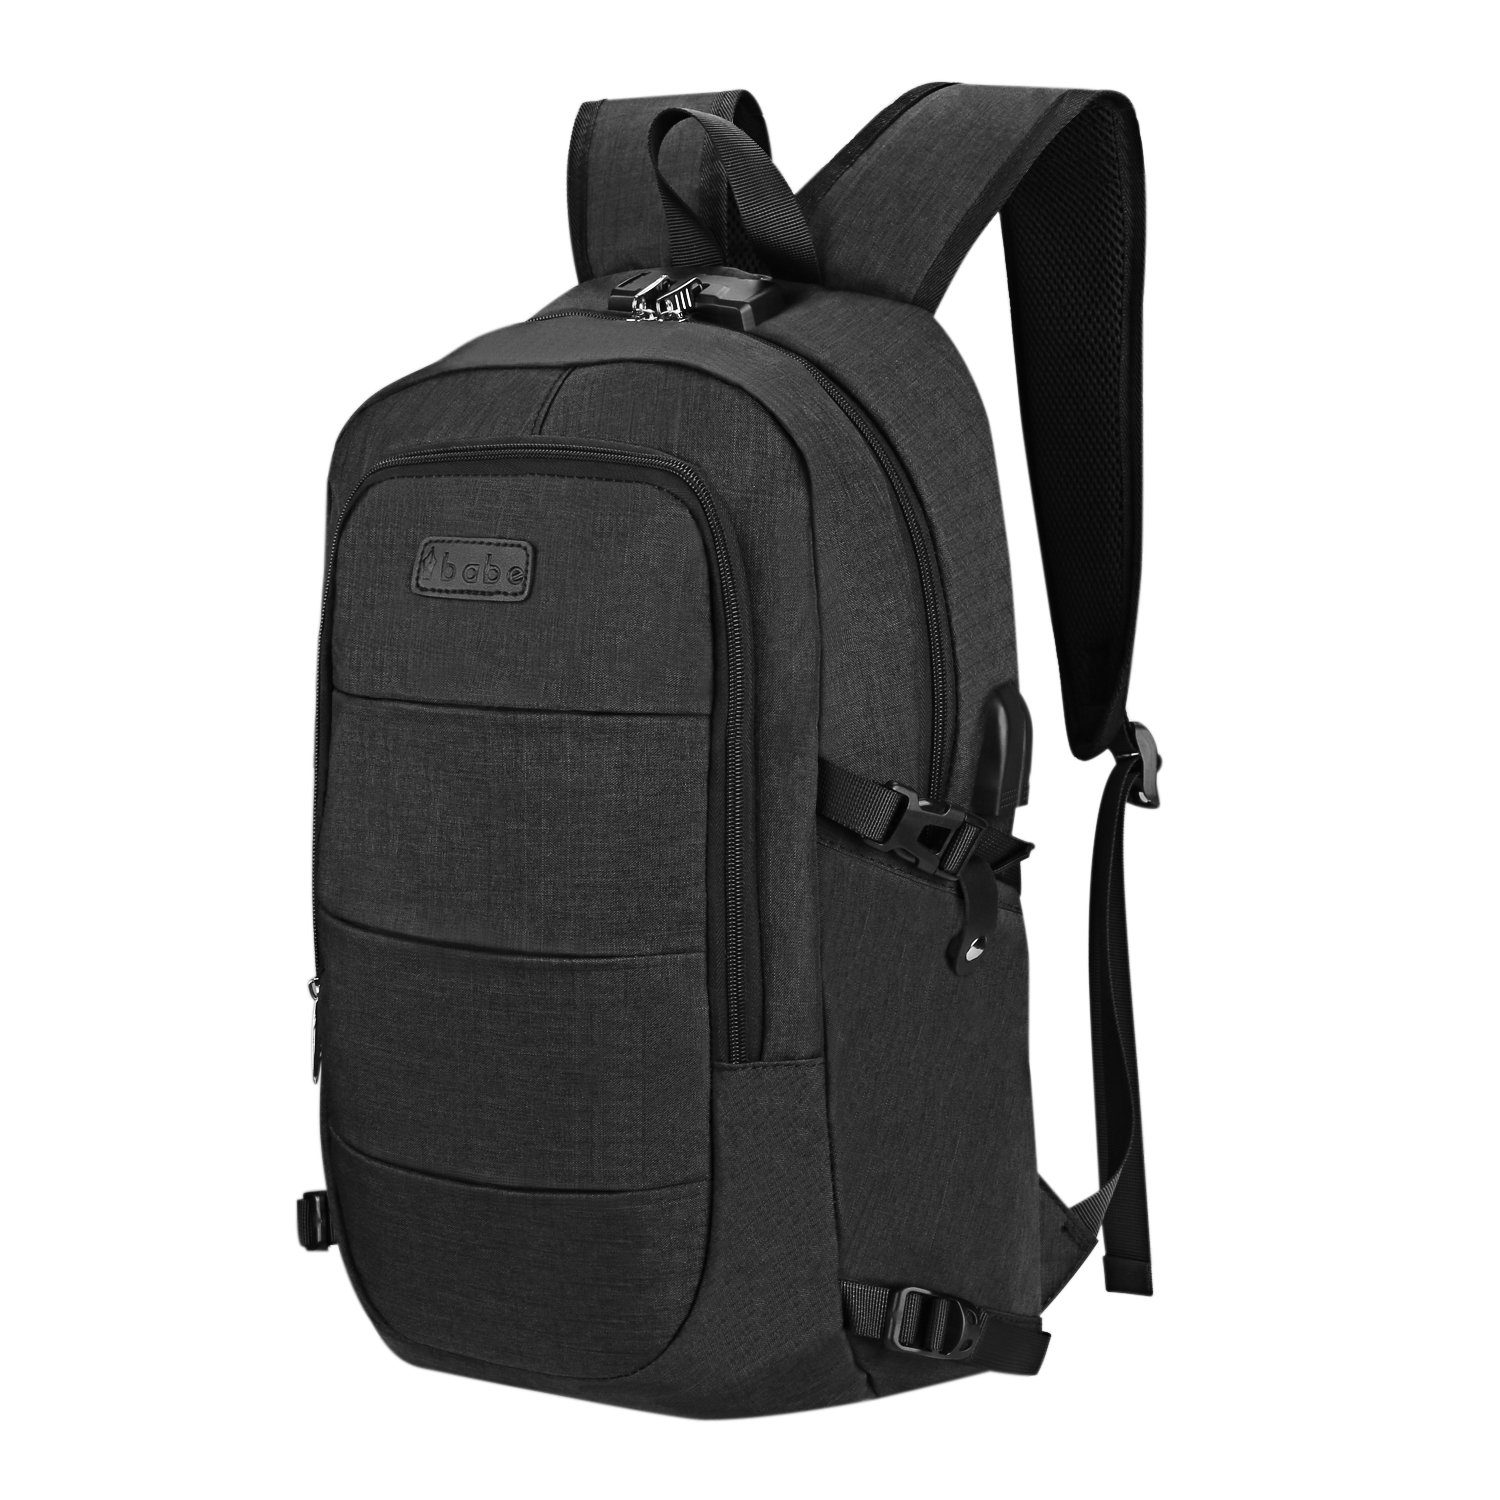 964f73e2dfc7 70%OFF Laptop Backpack - Business Anti Theft Waterproof Travel ...